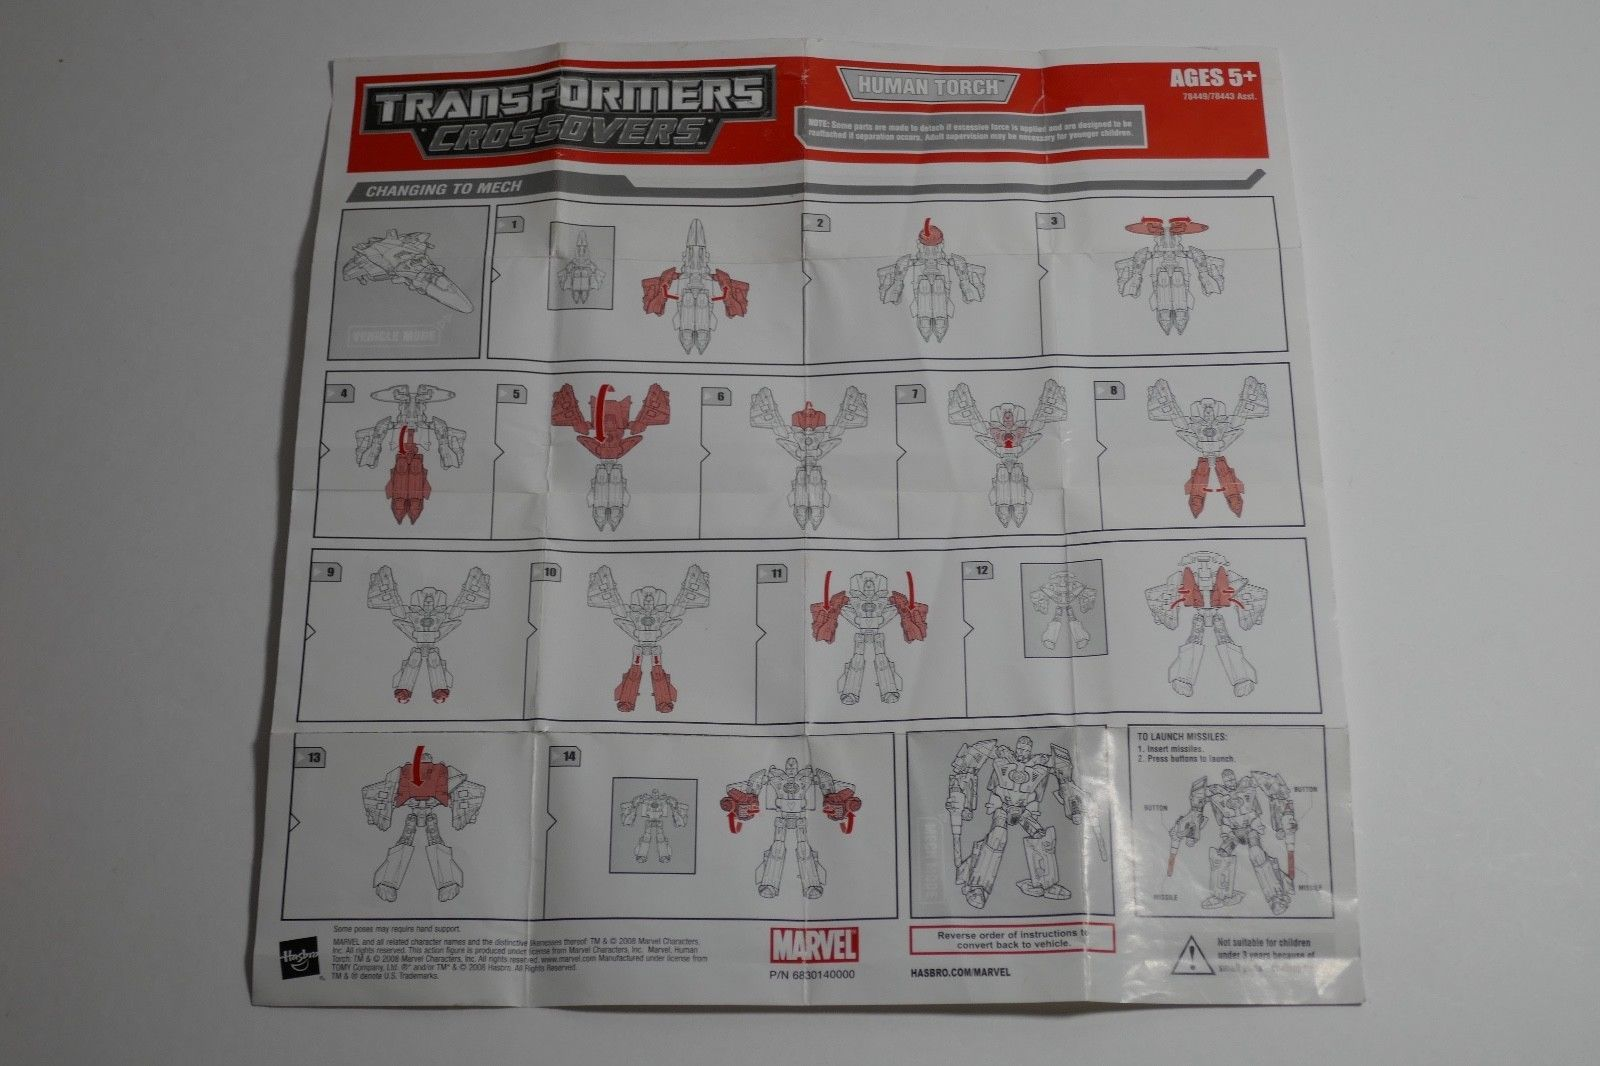 Hasbro Transformers Marvel Legends Crossovers Human Touch Action Figure image 10